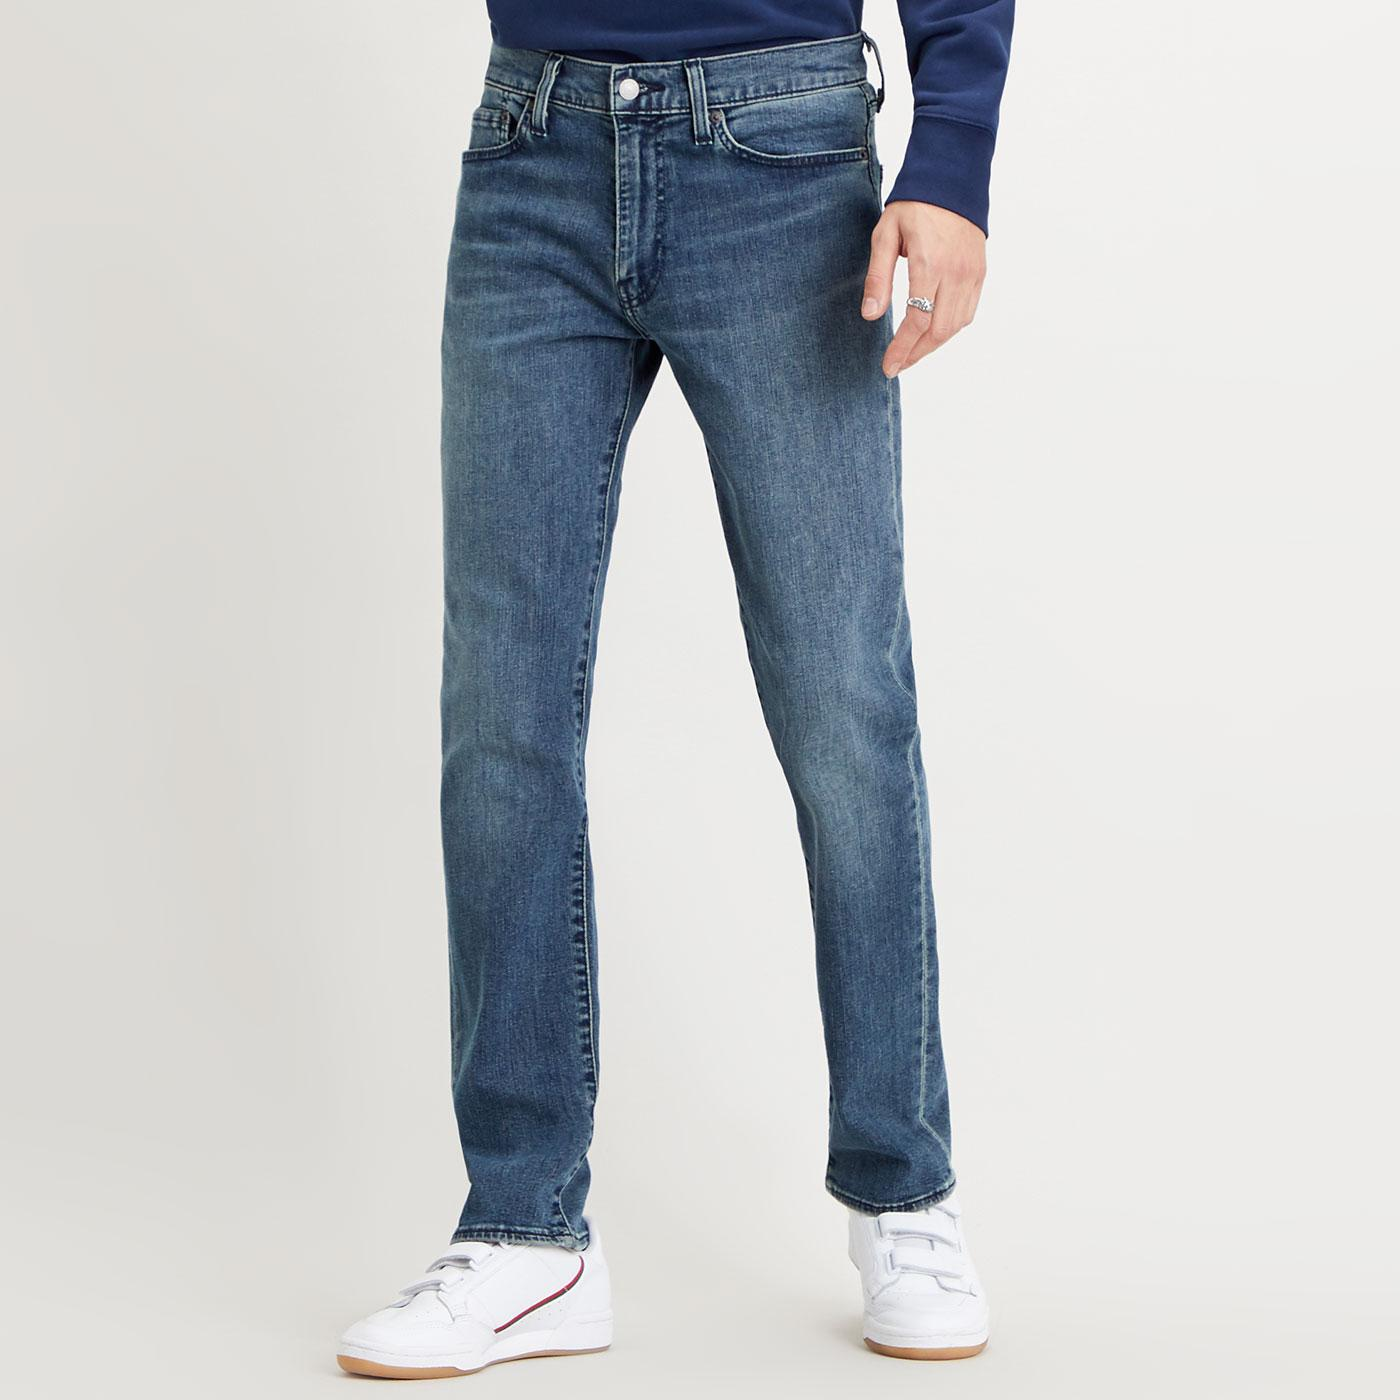 LEVI'S 511 Men's Retro Mod Slim Jeans (Rain Fly)